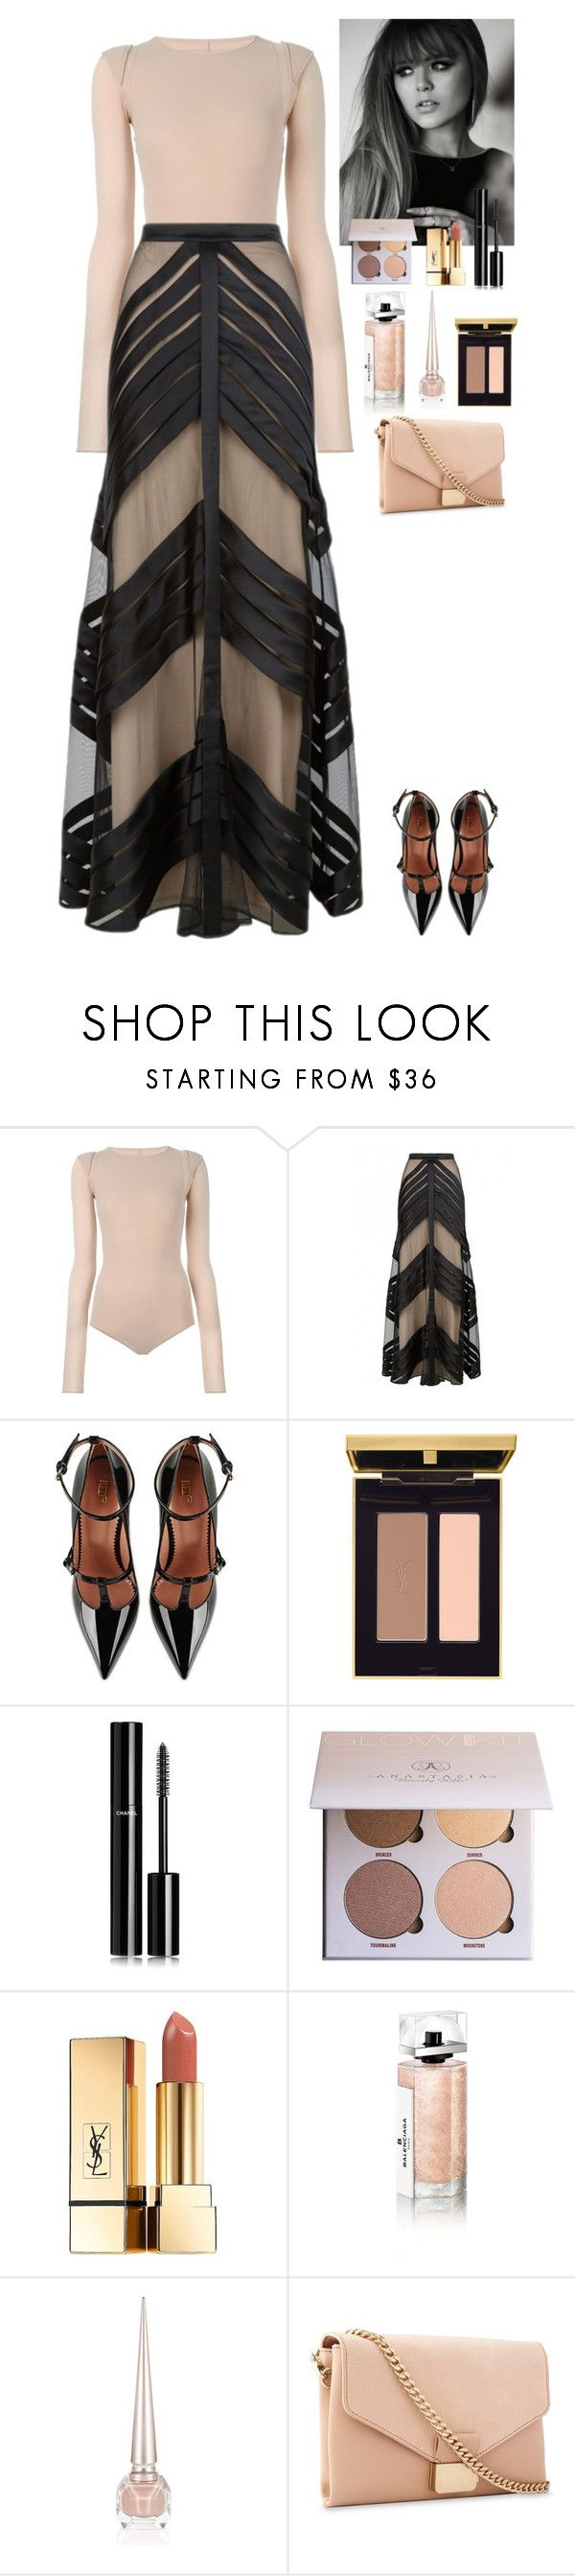 """""""Event"""" by eliza-redkina ❤ liked on Polyvore featuring Maison Margiela, Temperley London, RED Valentino, Chanel, Anastasia Beverly Hills, Yves Saint Laurent, Balenciaga, Christian Louboutin, Whistles and outfit"""